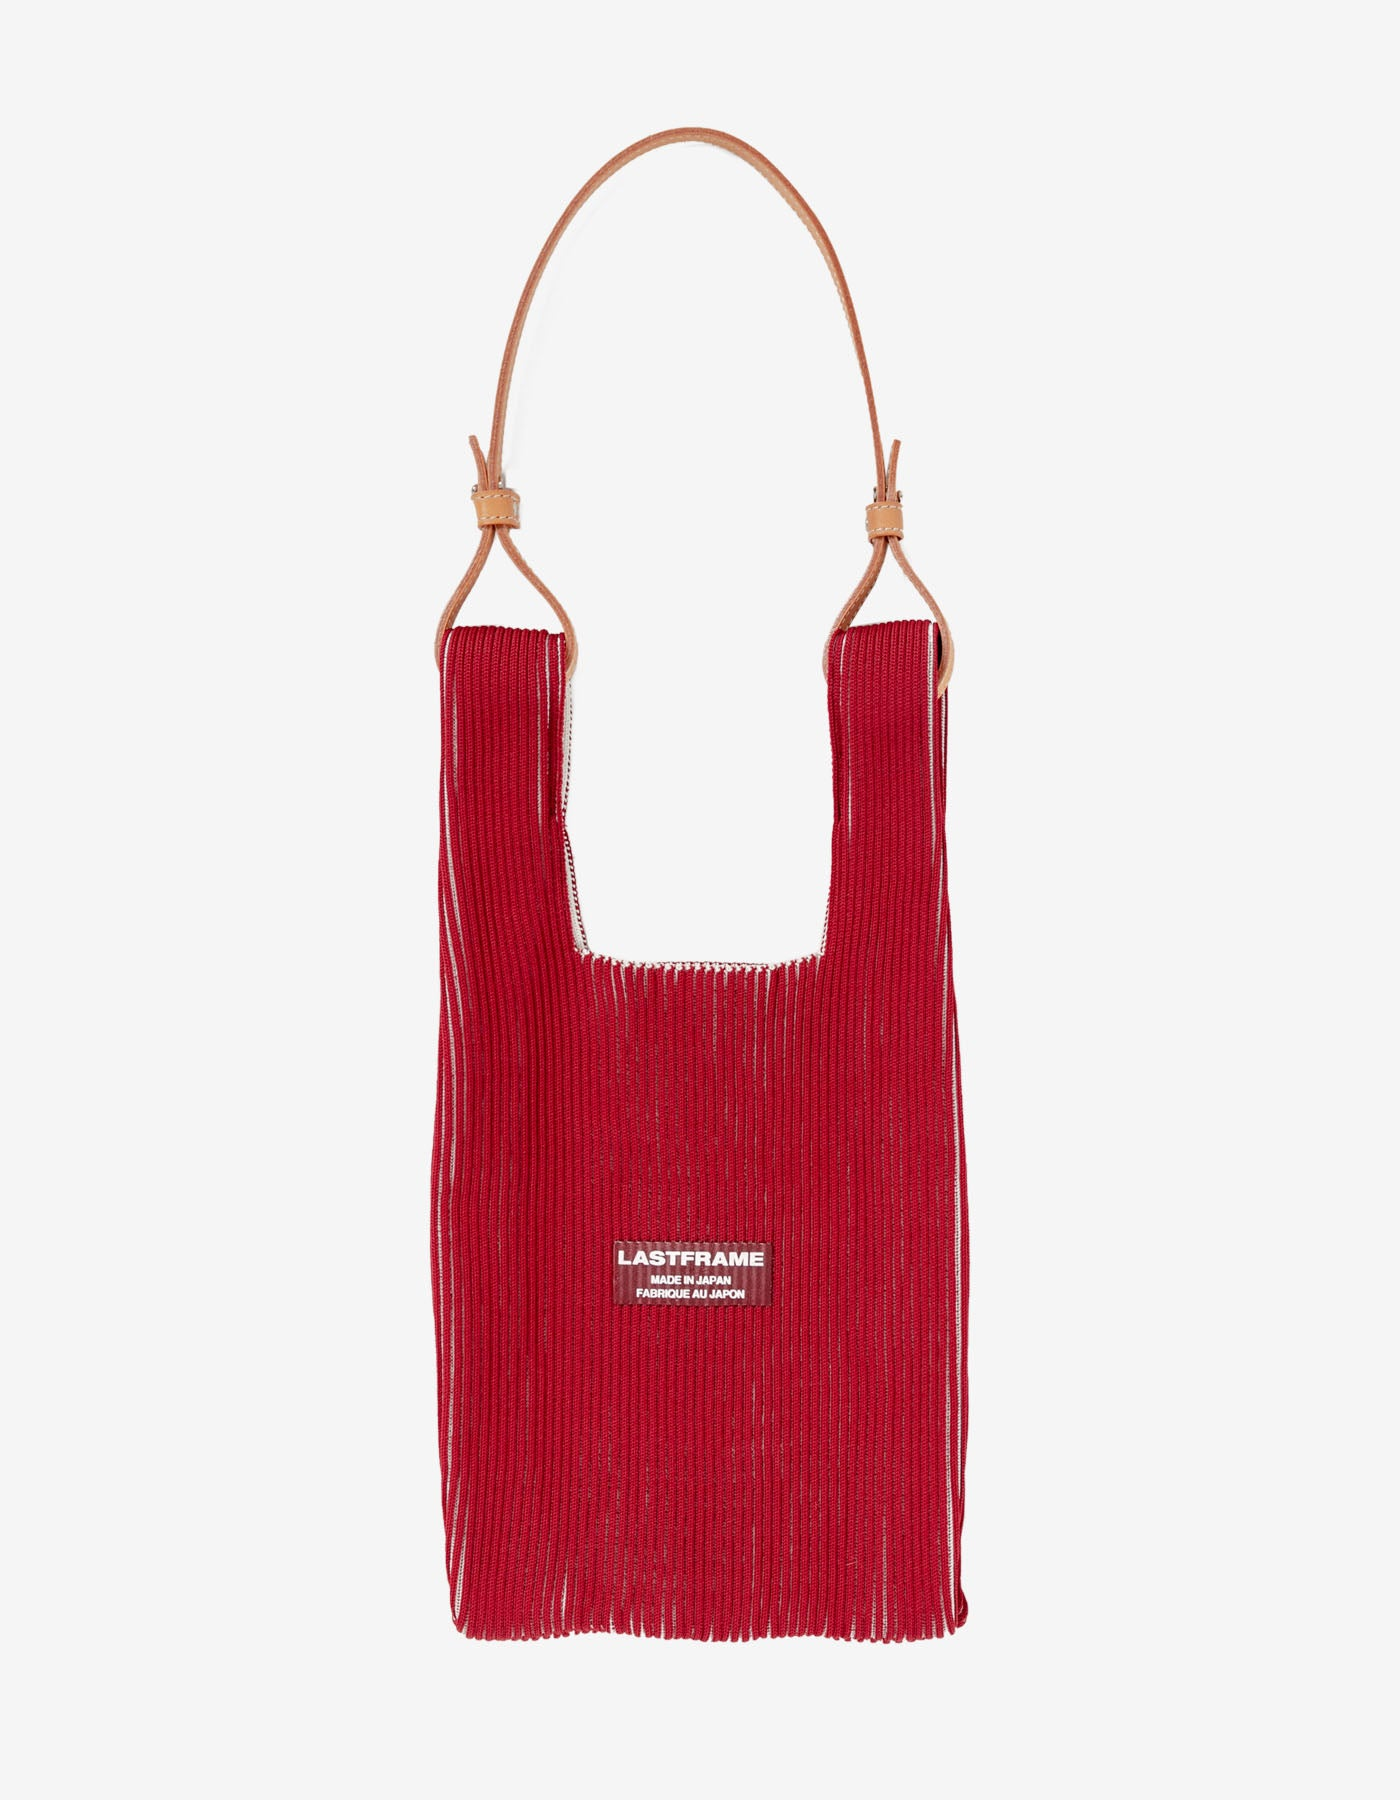 TWO TONE MARKET BAG